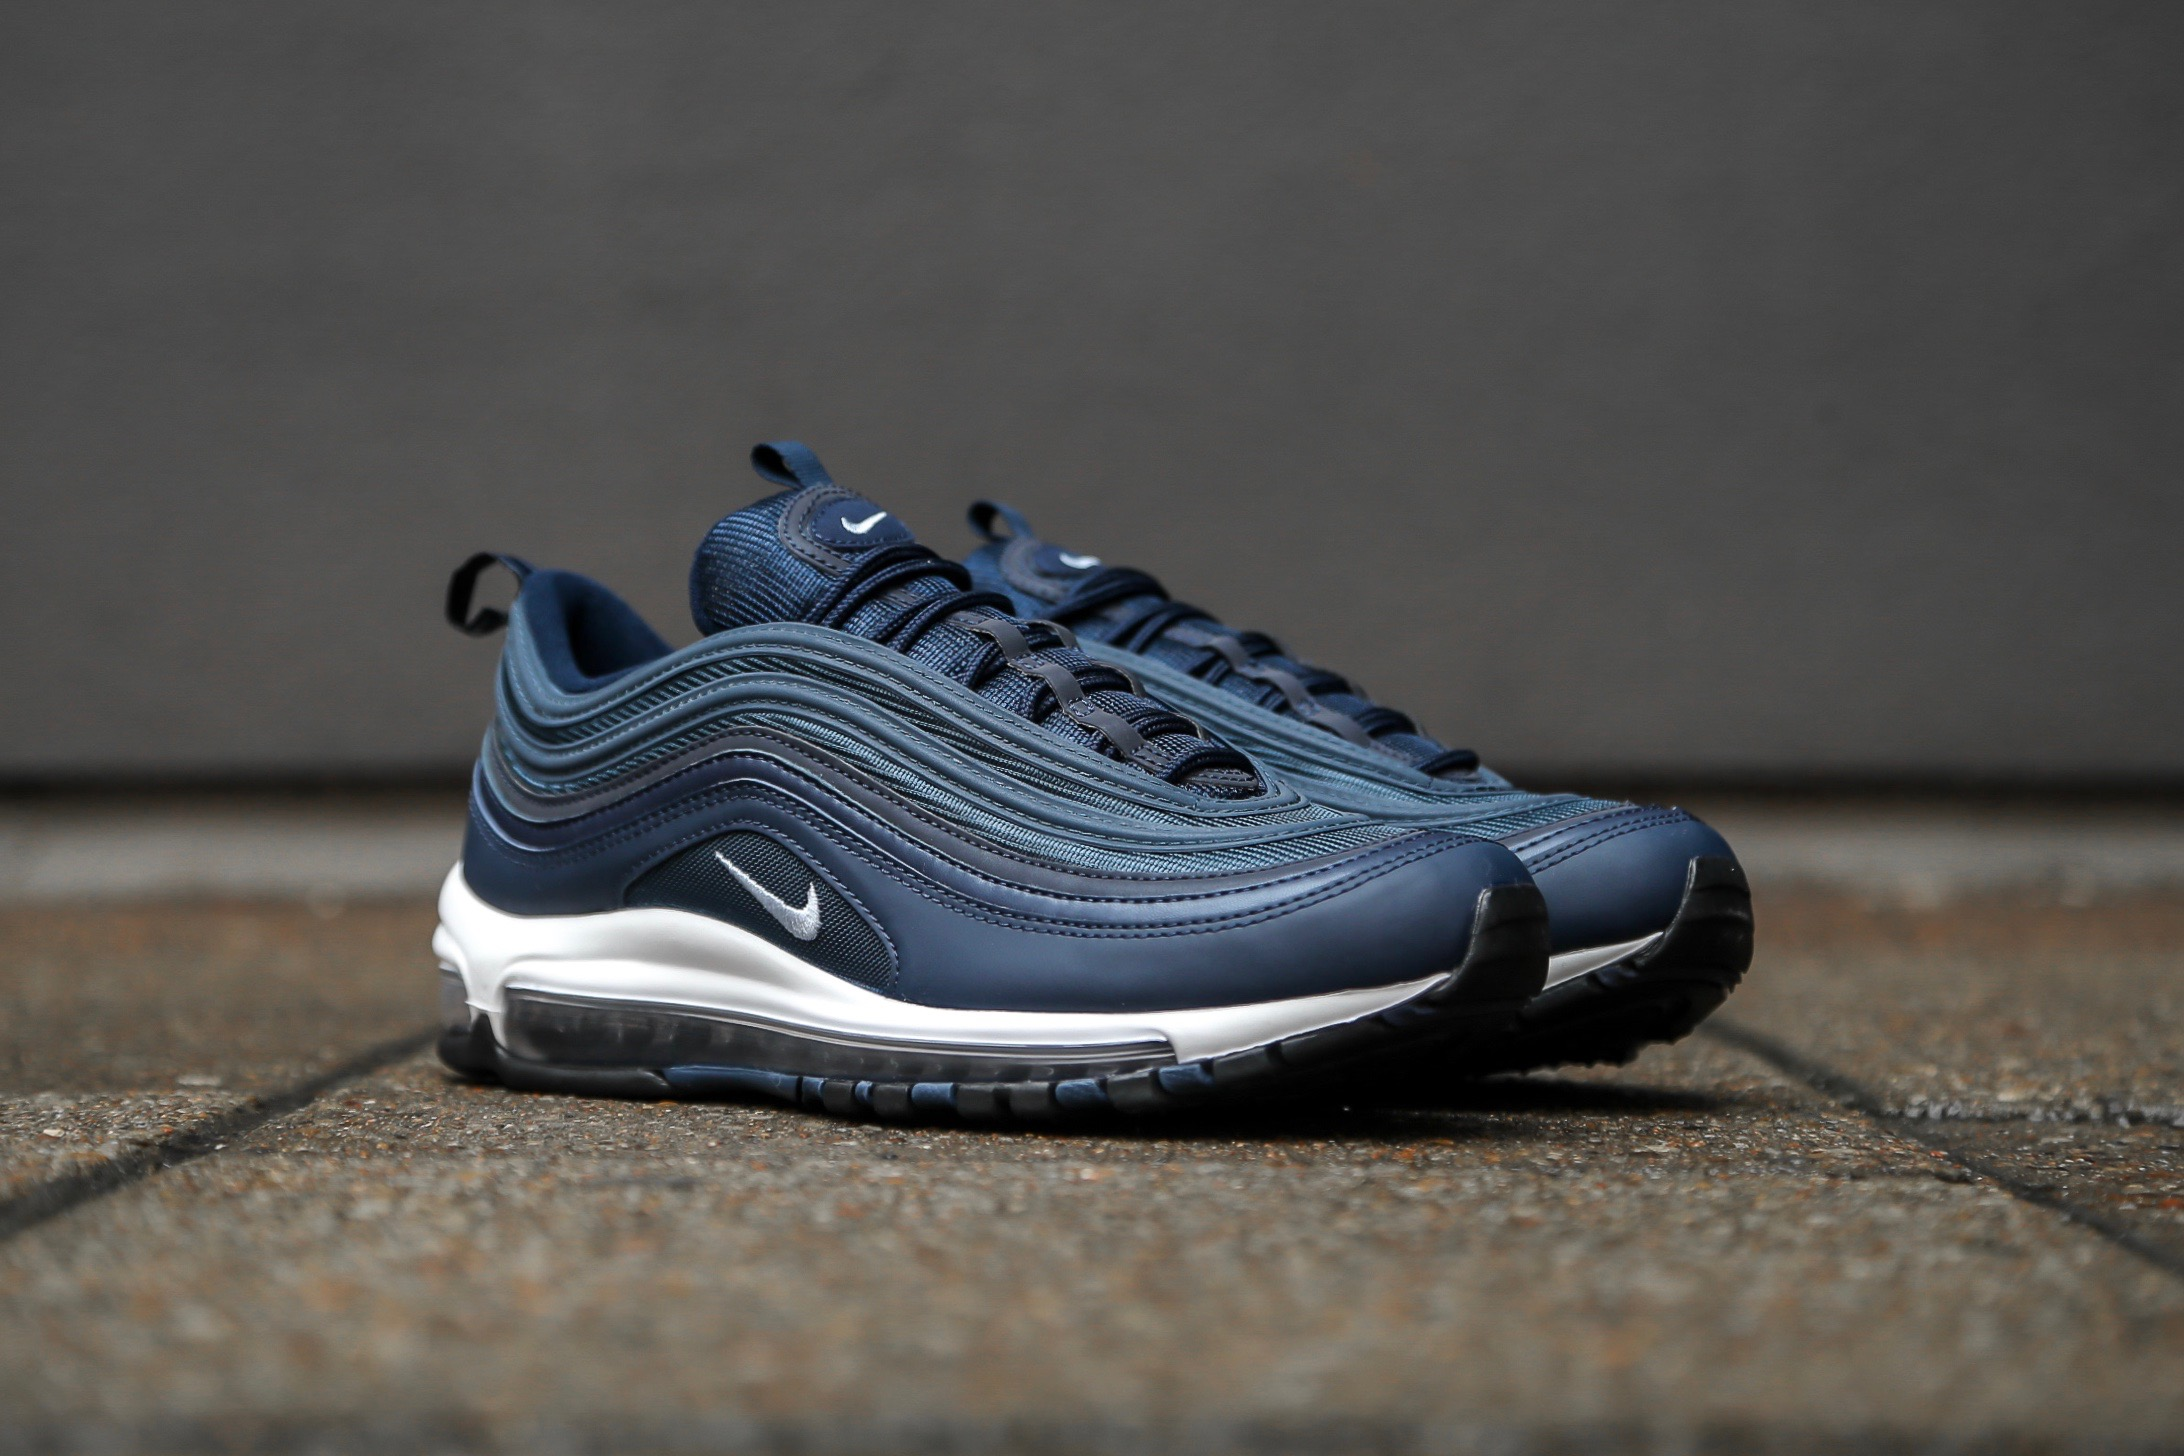 sale retailer a0d4b fcb8c Nike Air Max 97 Essential - Obsidian / Monsoon Blue / White / Obsidian Mist